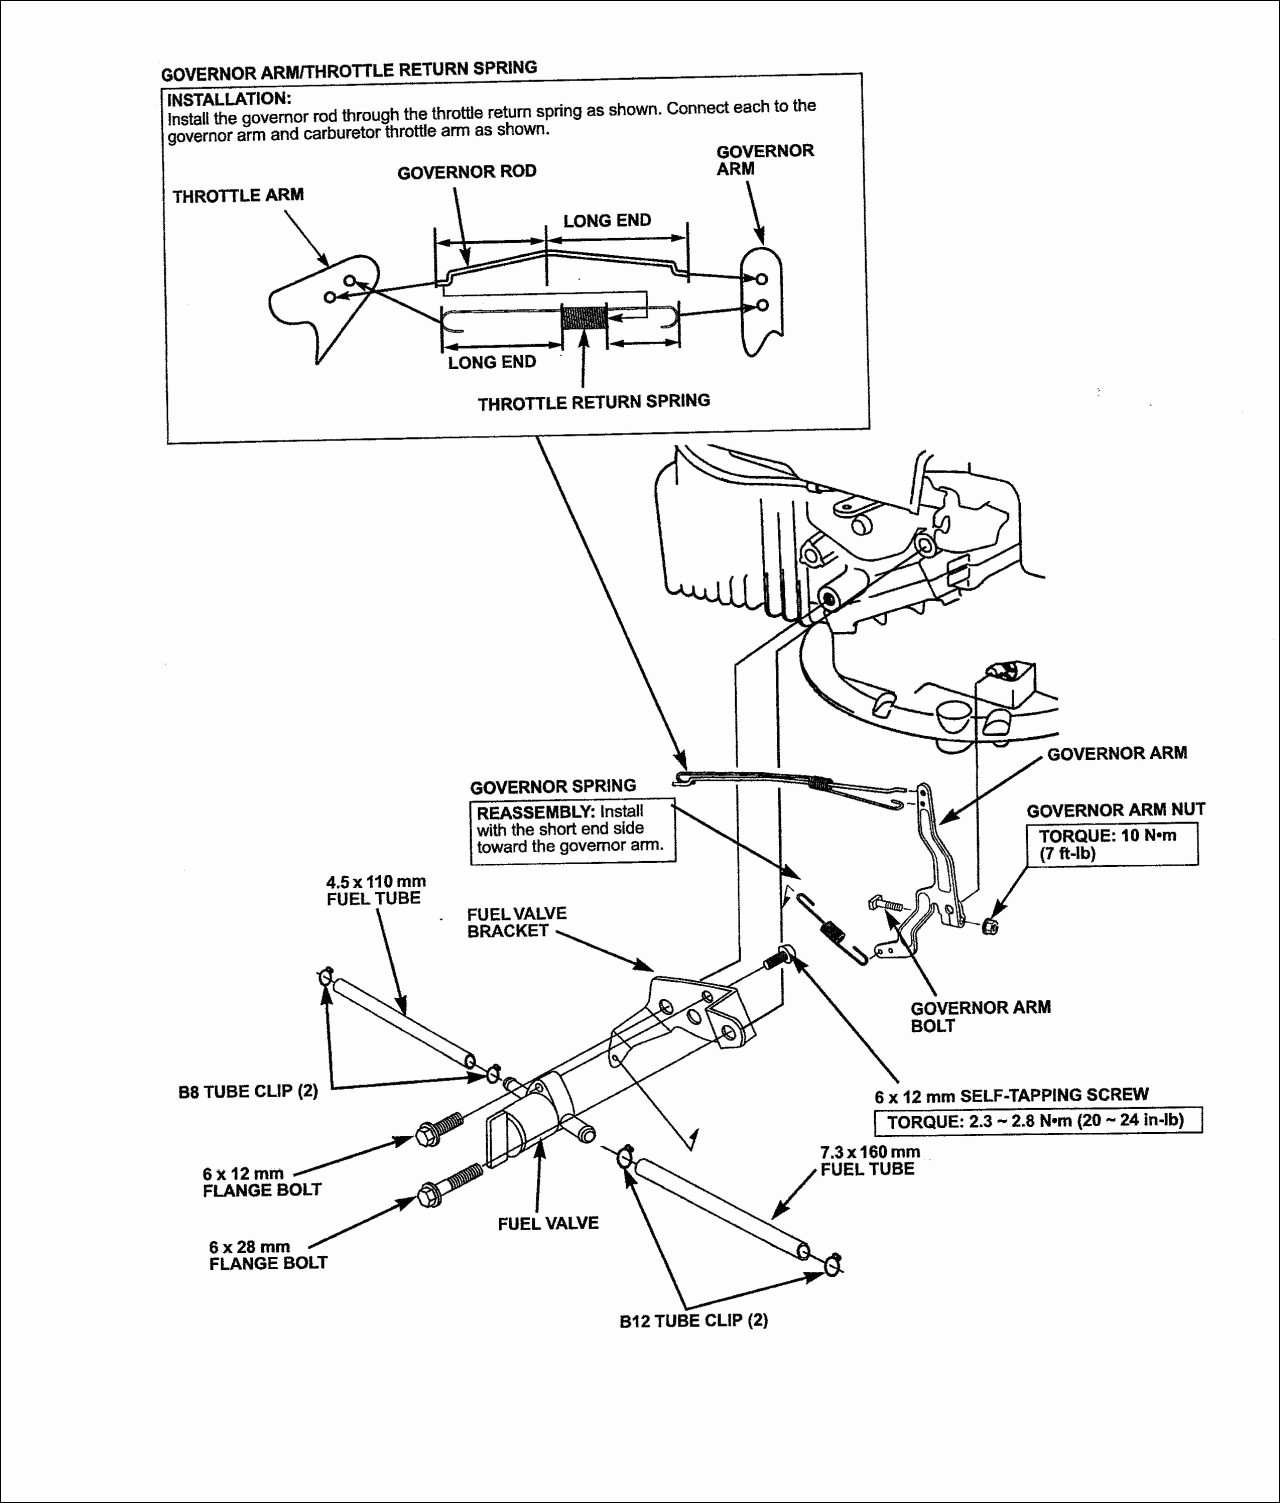 Infiniti Q45 Engine Diagram 1997 Infiniti I30 Fuse Box Diagram Infiniti  Wiring Diagrams Of Infiniti Q45